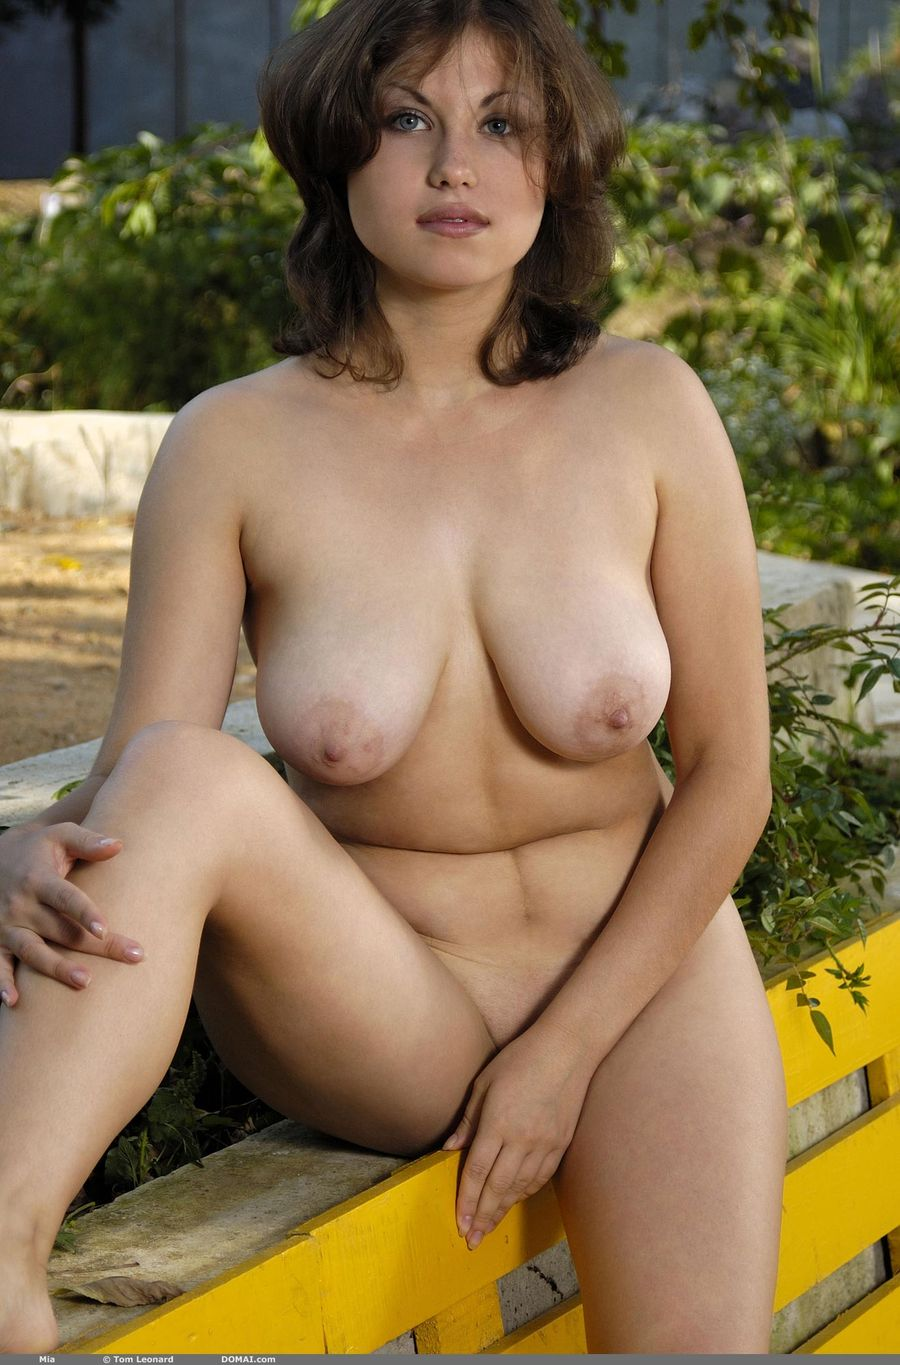 That can beautiful tasteful nudes natural